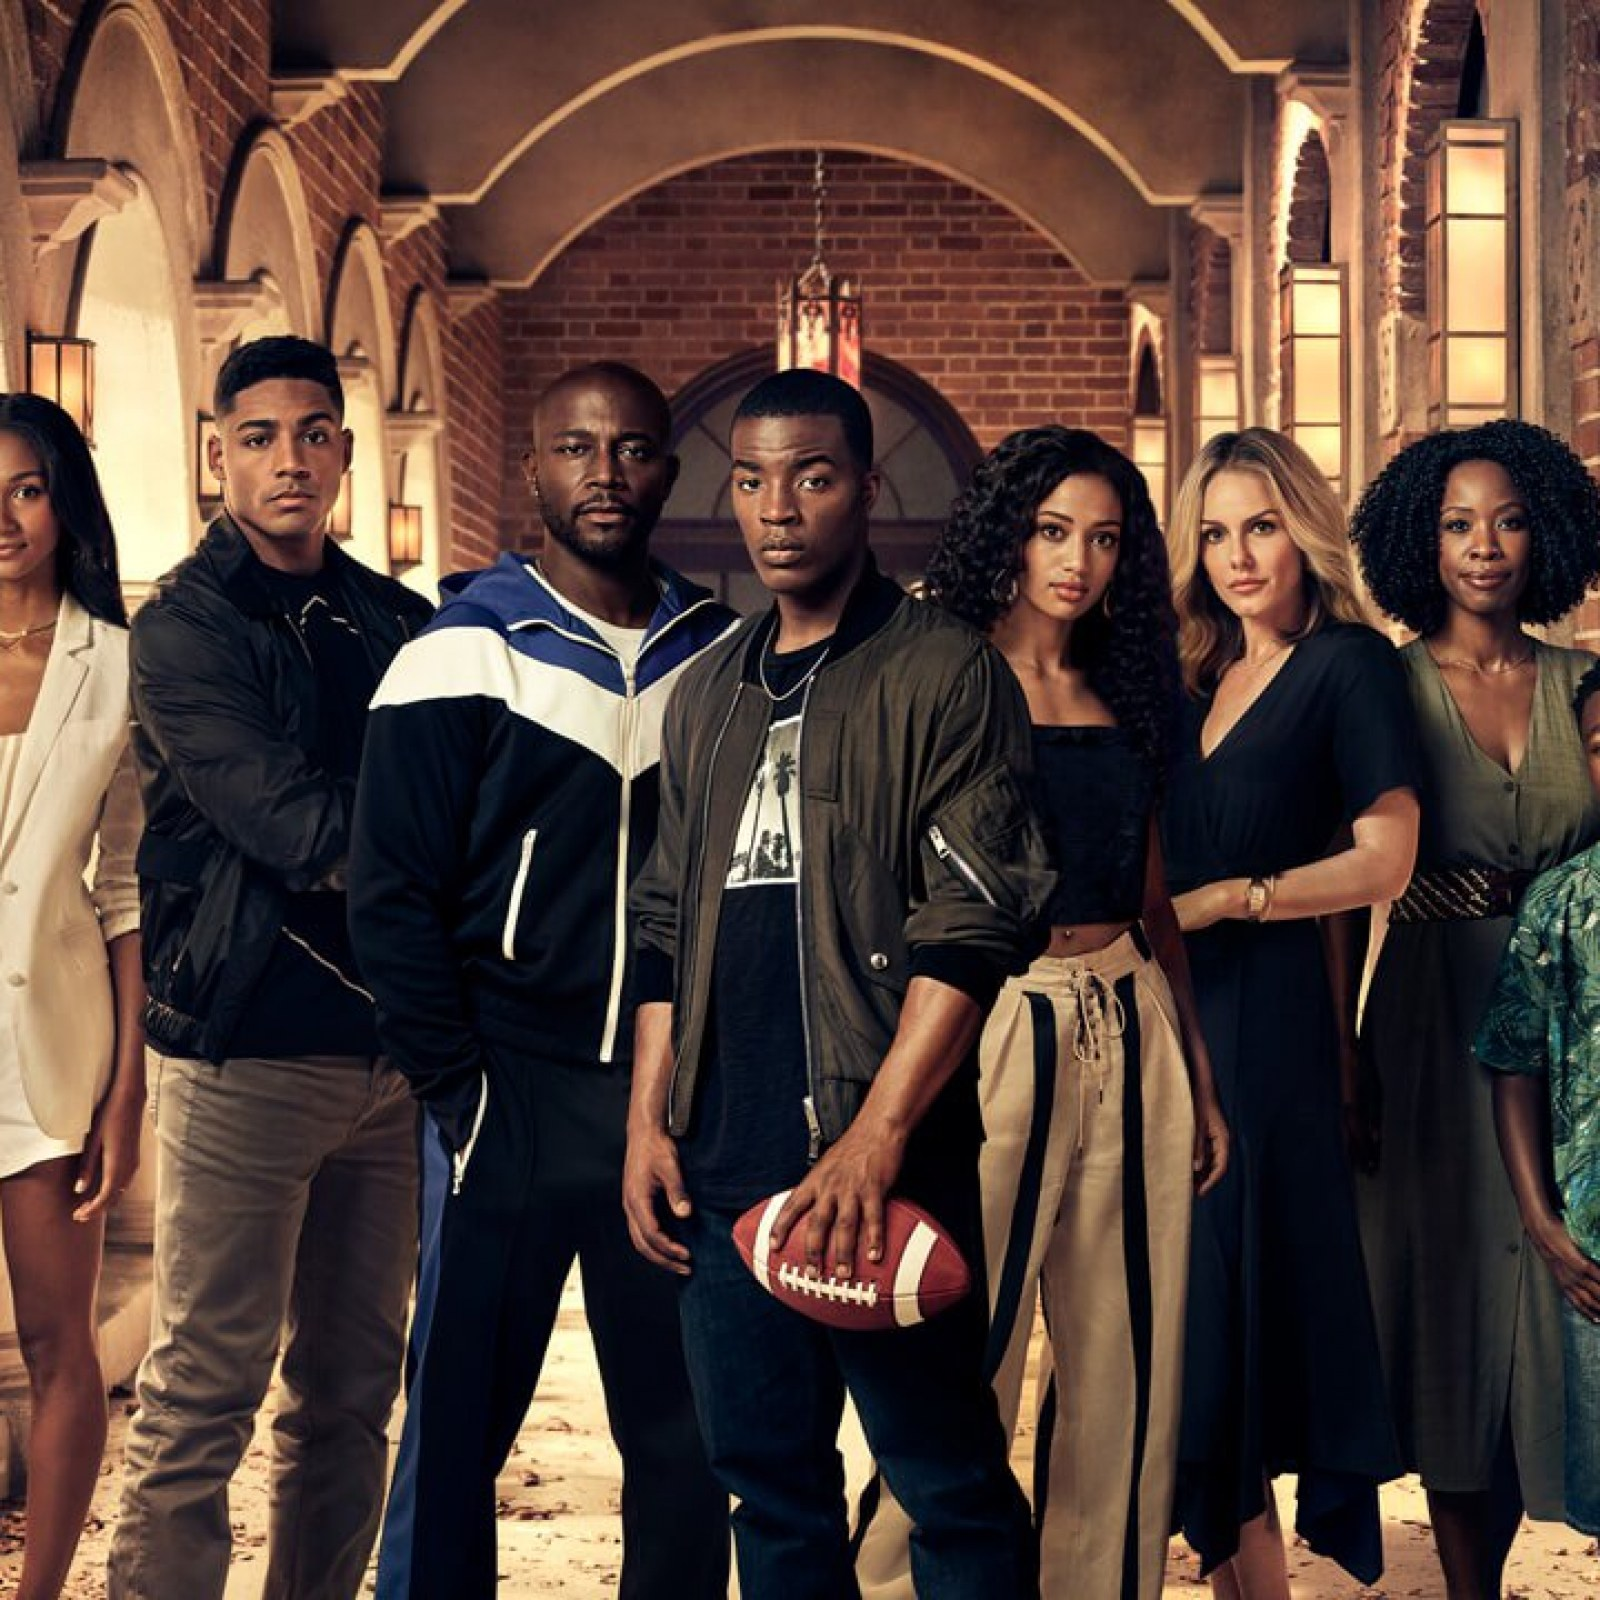 All American' Season 2 Release Date, Cast, Trailer, Plot